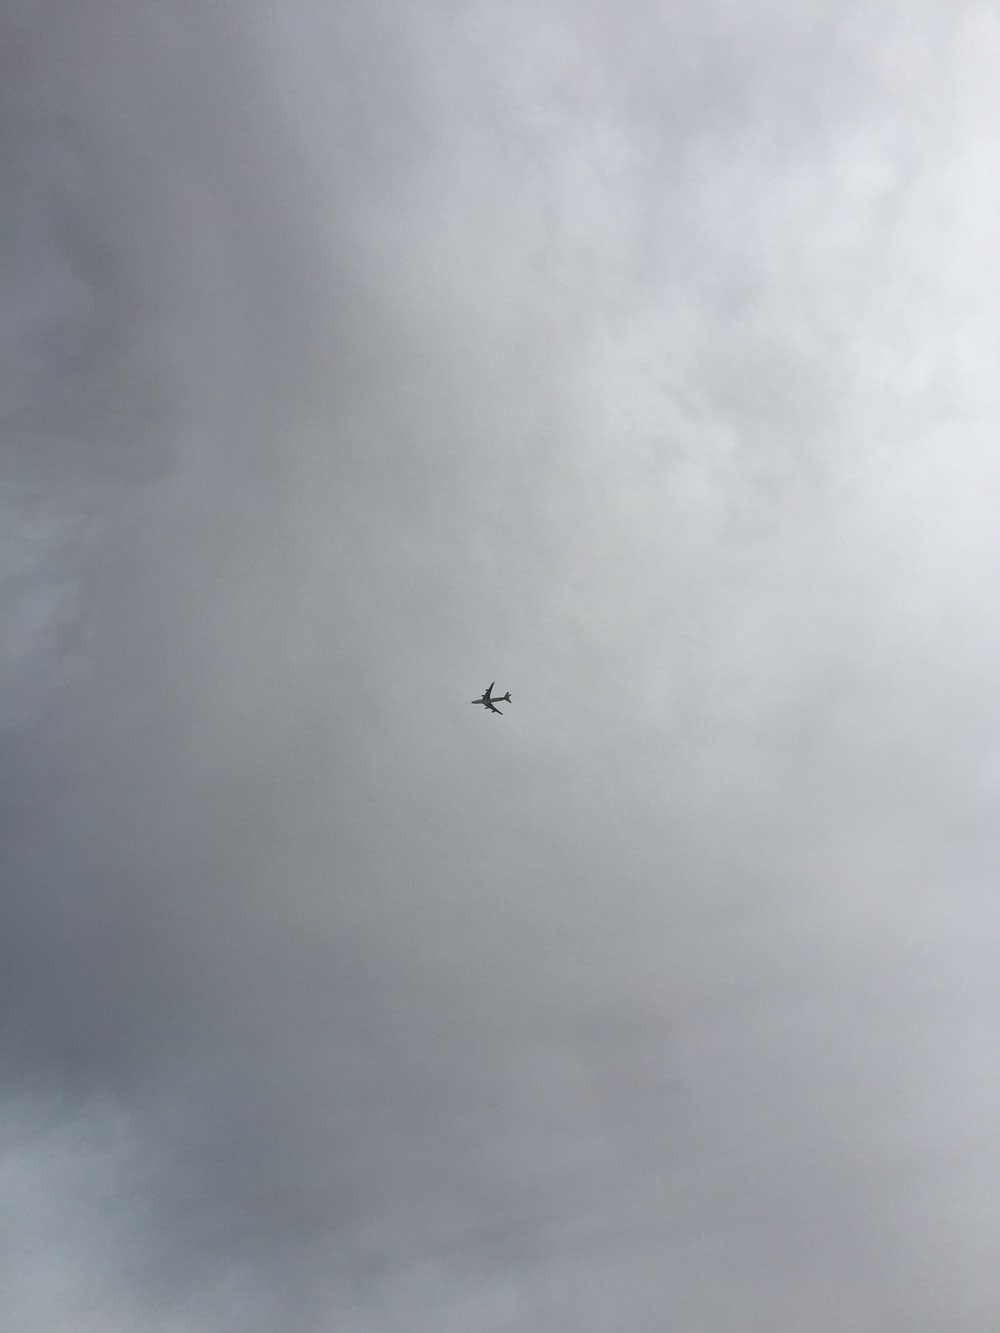 low-angle photography of airplane